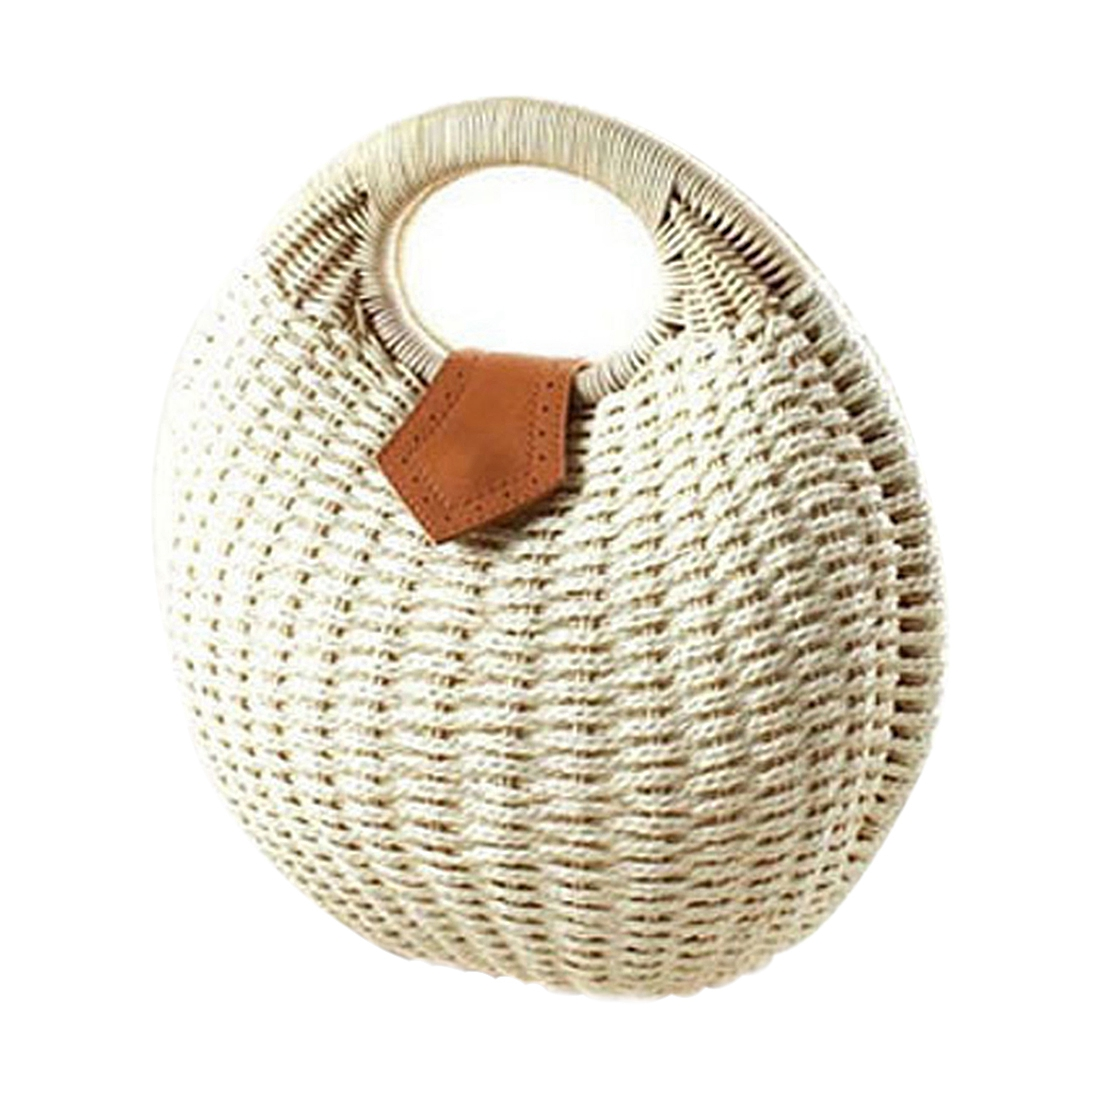 Snail's Nest Tote Handbag Summer Beach Bags Woman Straw Bags Women's Handbag Rat